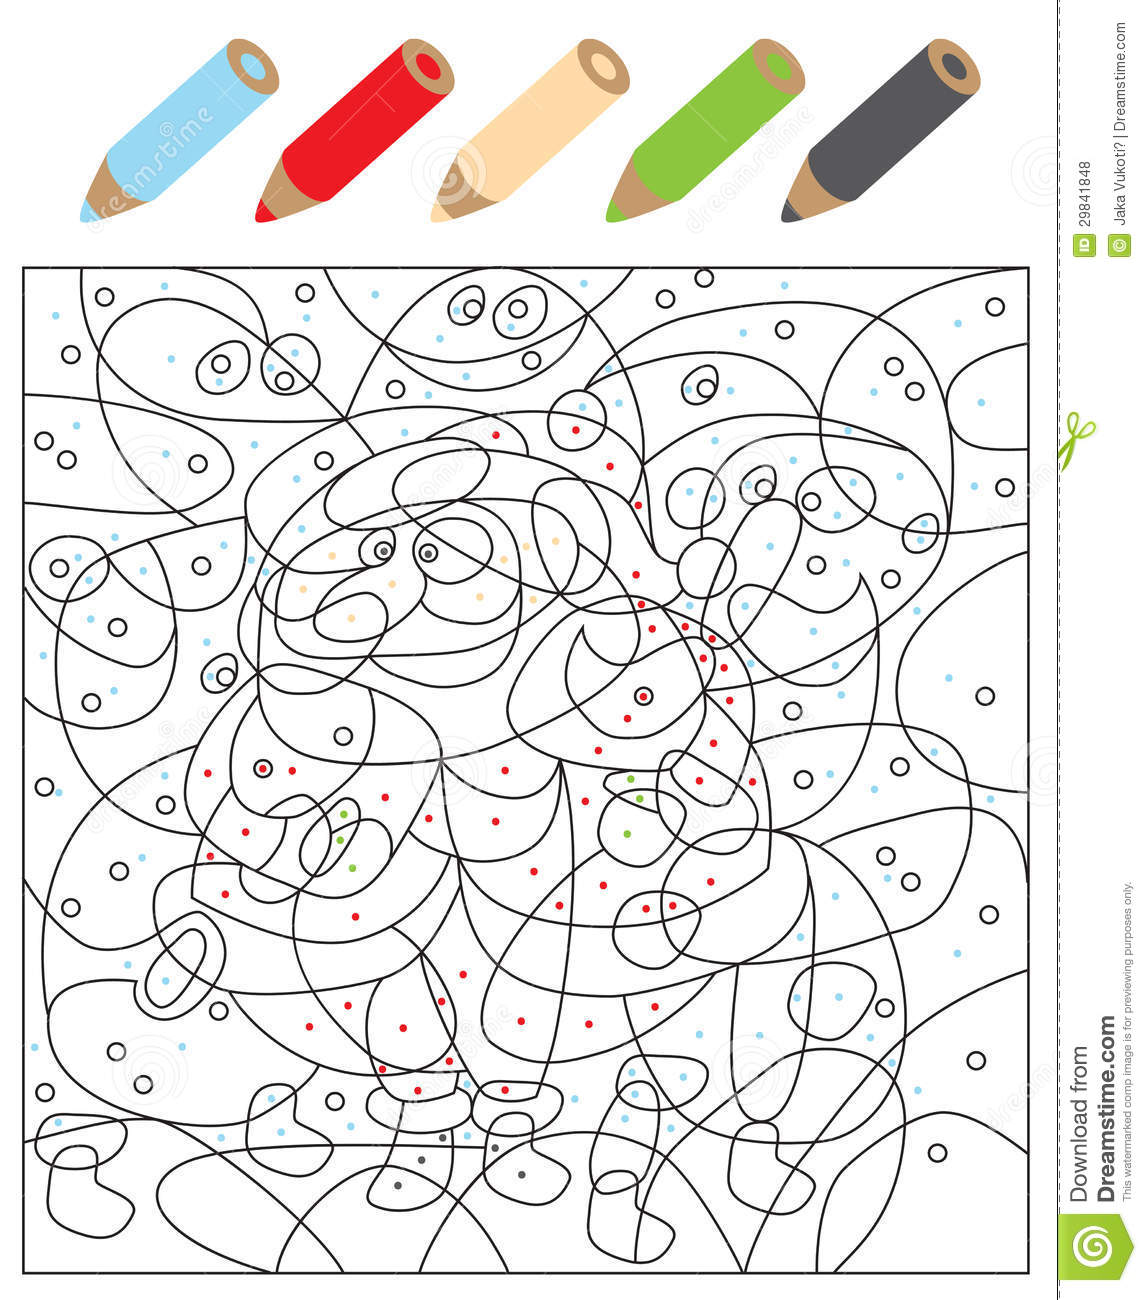 Color The Dots Visual Game Stock Vector Illustration Of